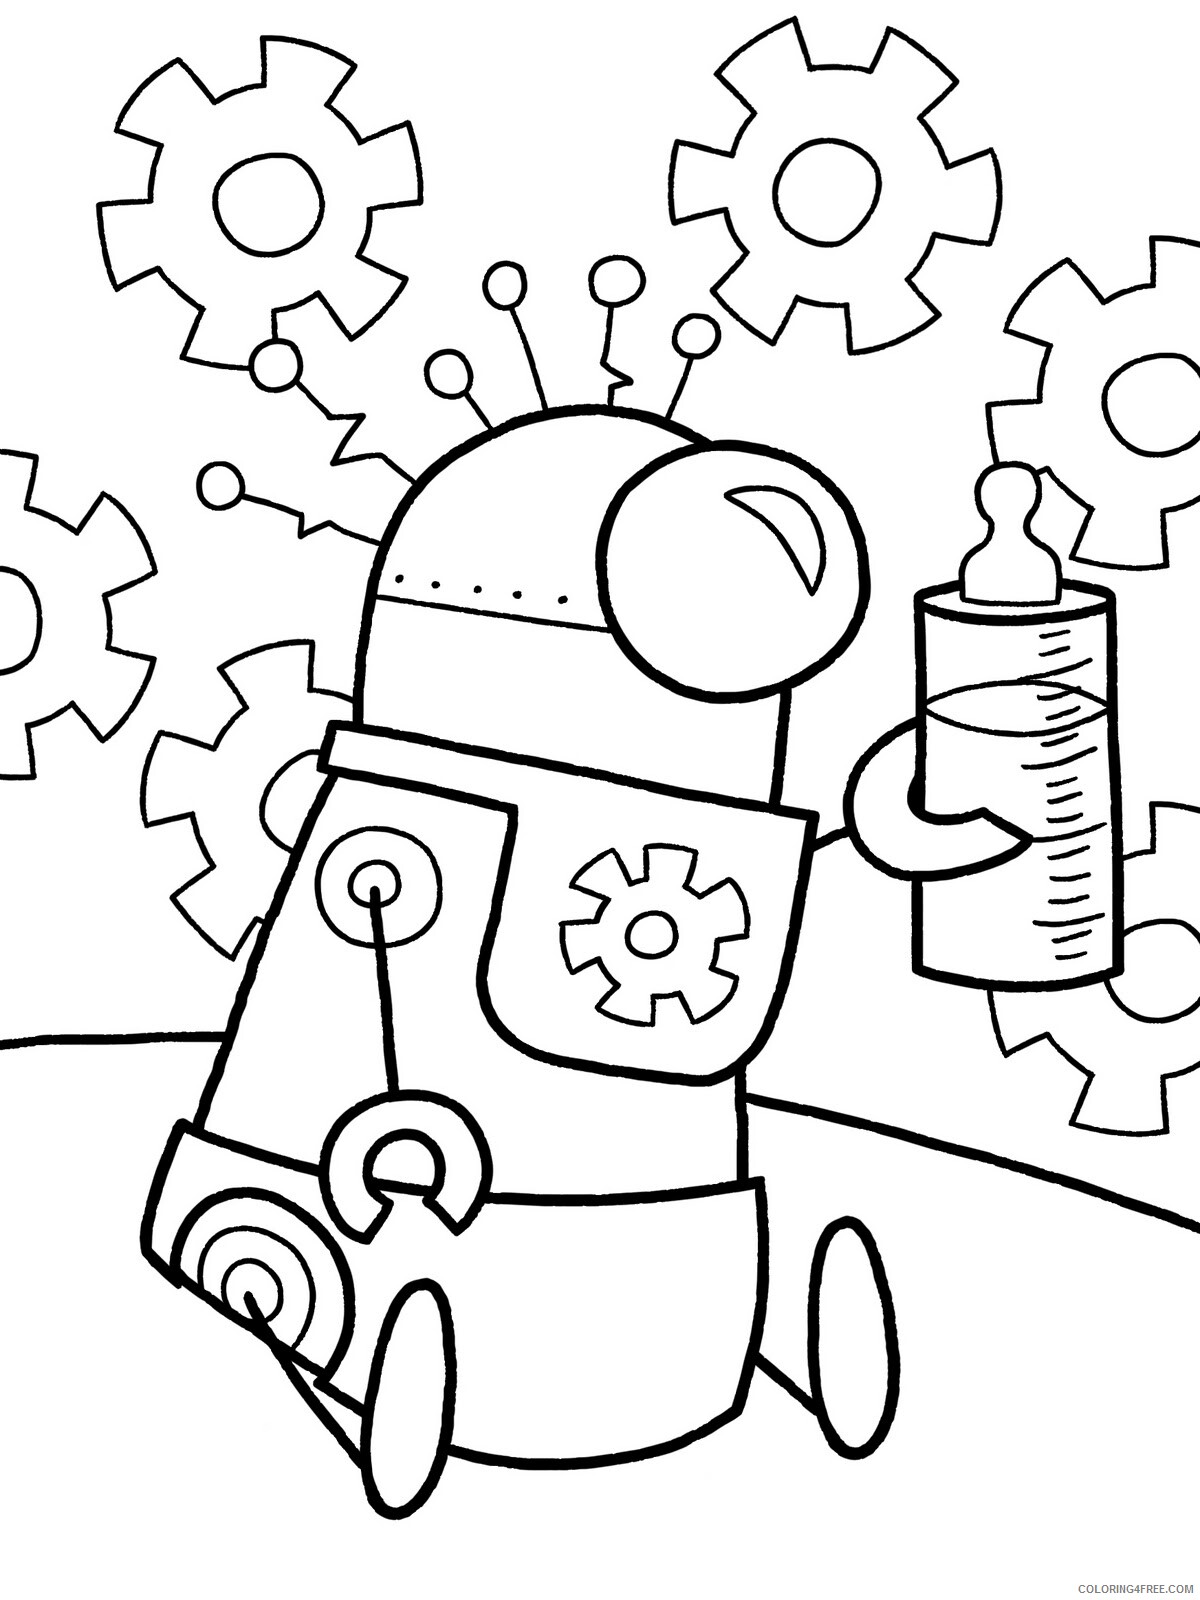 Robots Coloring Pages For Boys Cute Robot To Printable 2020 0831 Coloring4free Coloring4free Com